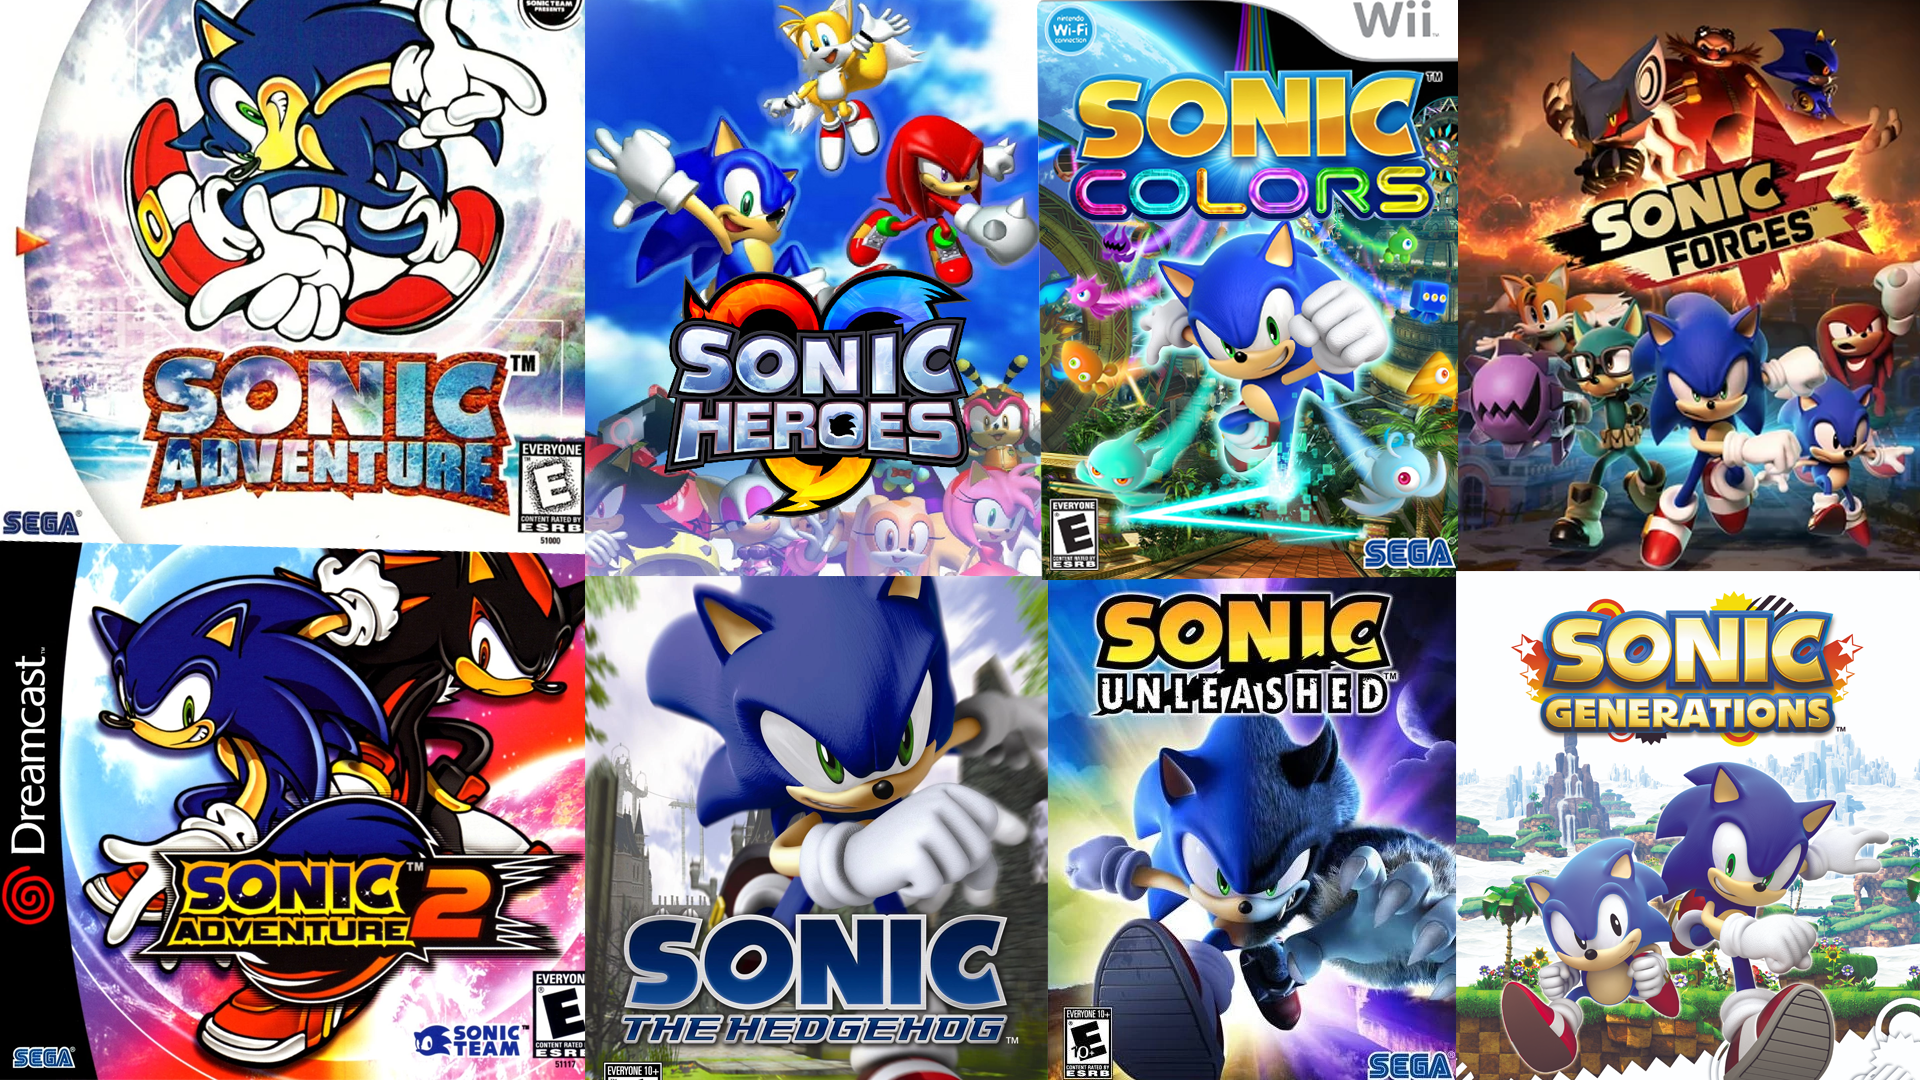 What Is The Best 3d Sonic The Hedgehog Video Game Segabits 1 Source For Sega News